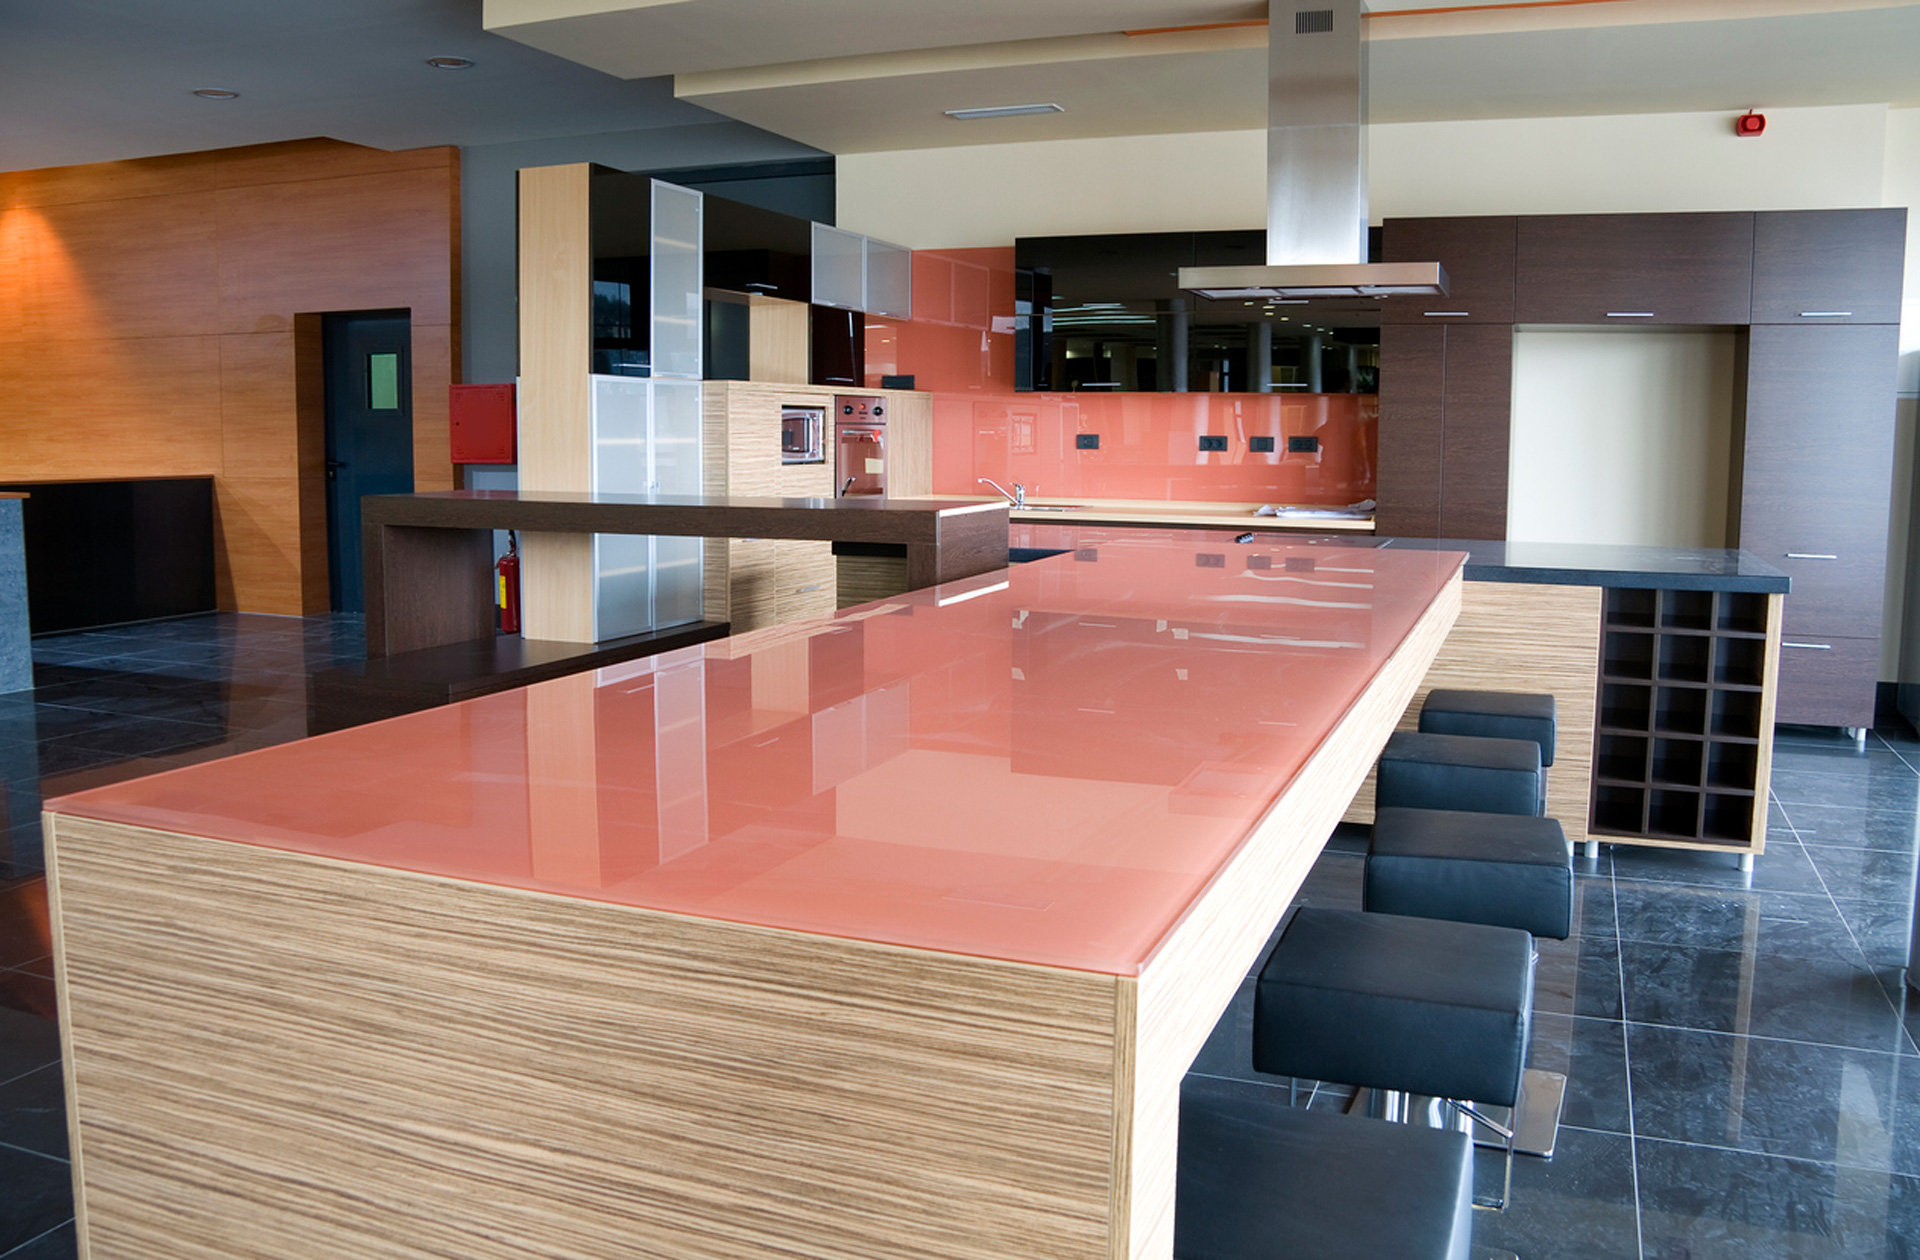 Think Glass Countertops The 2018 Kitchen Trend Part Two Countertop Cabinetcorp